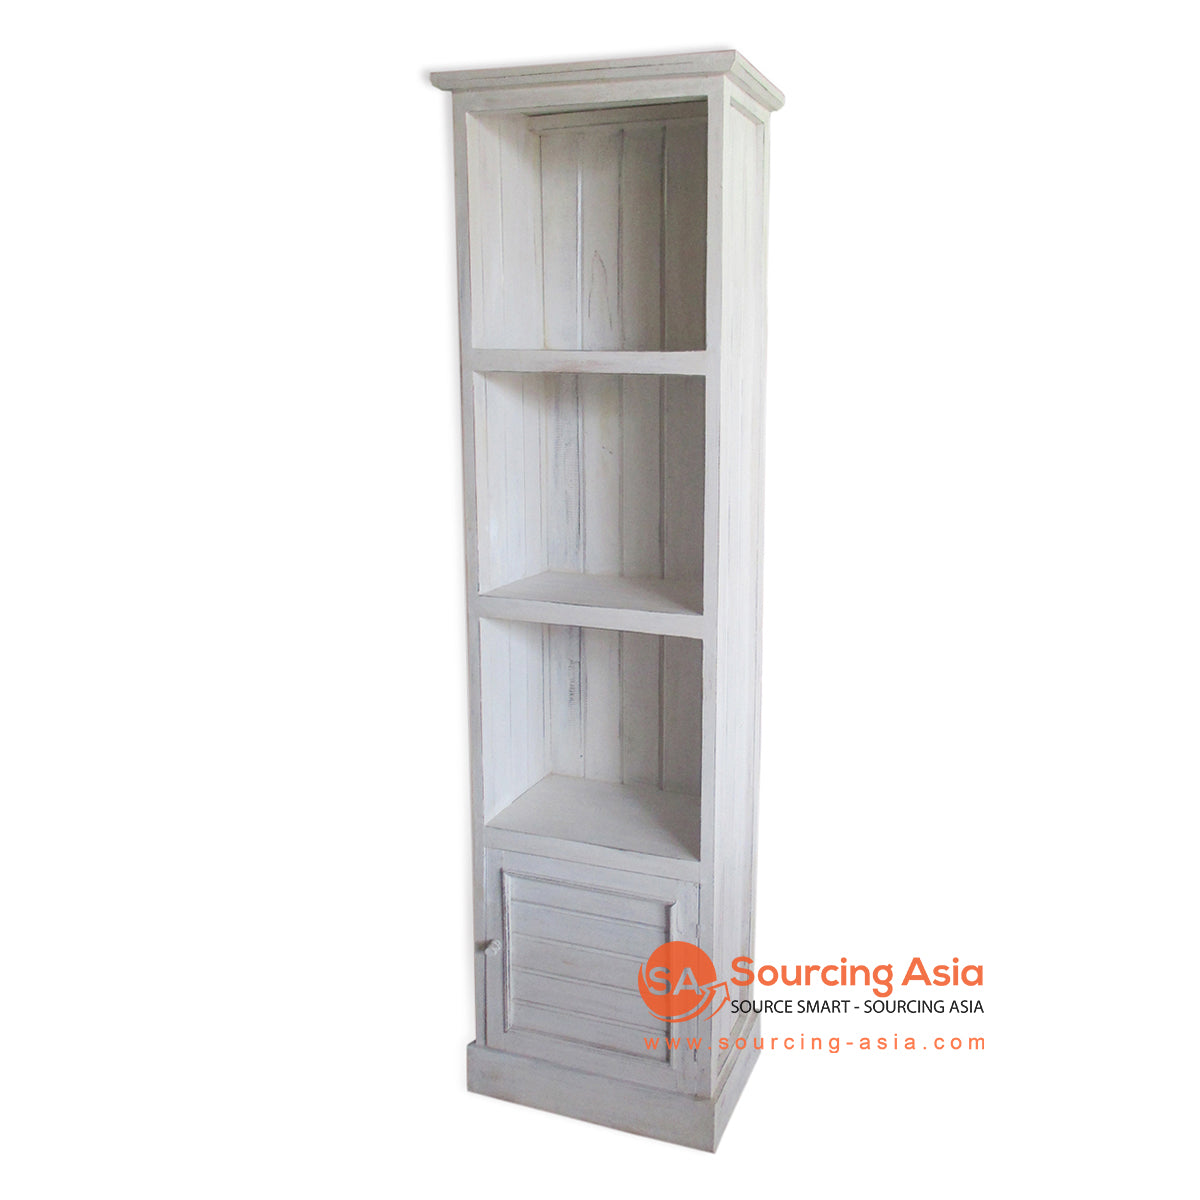 THE141WW BOOK RACK WITH 1 DRAWER WHITE WASH